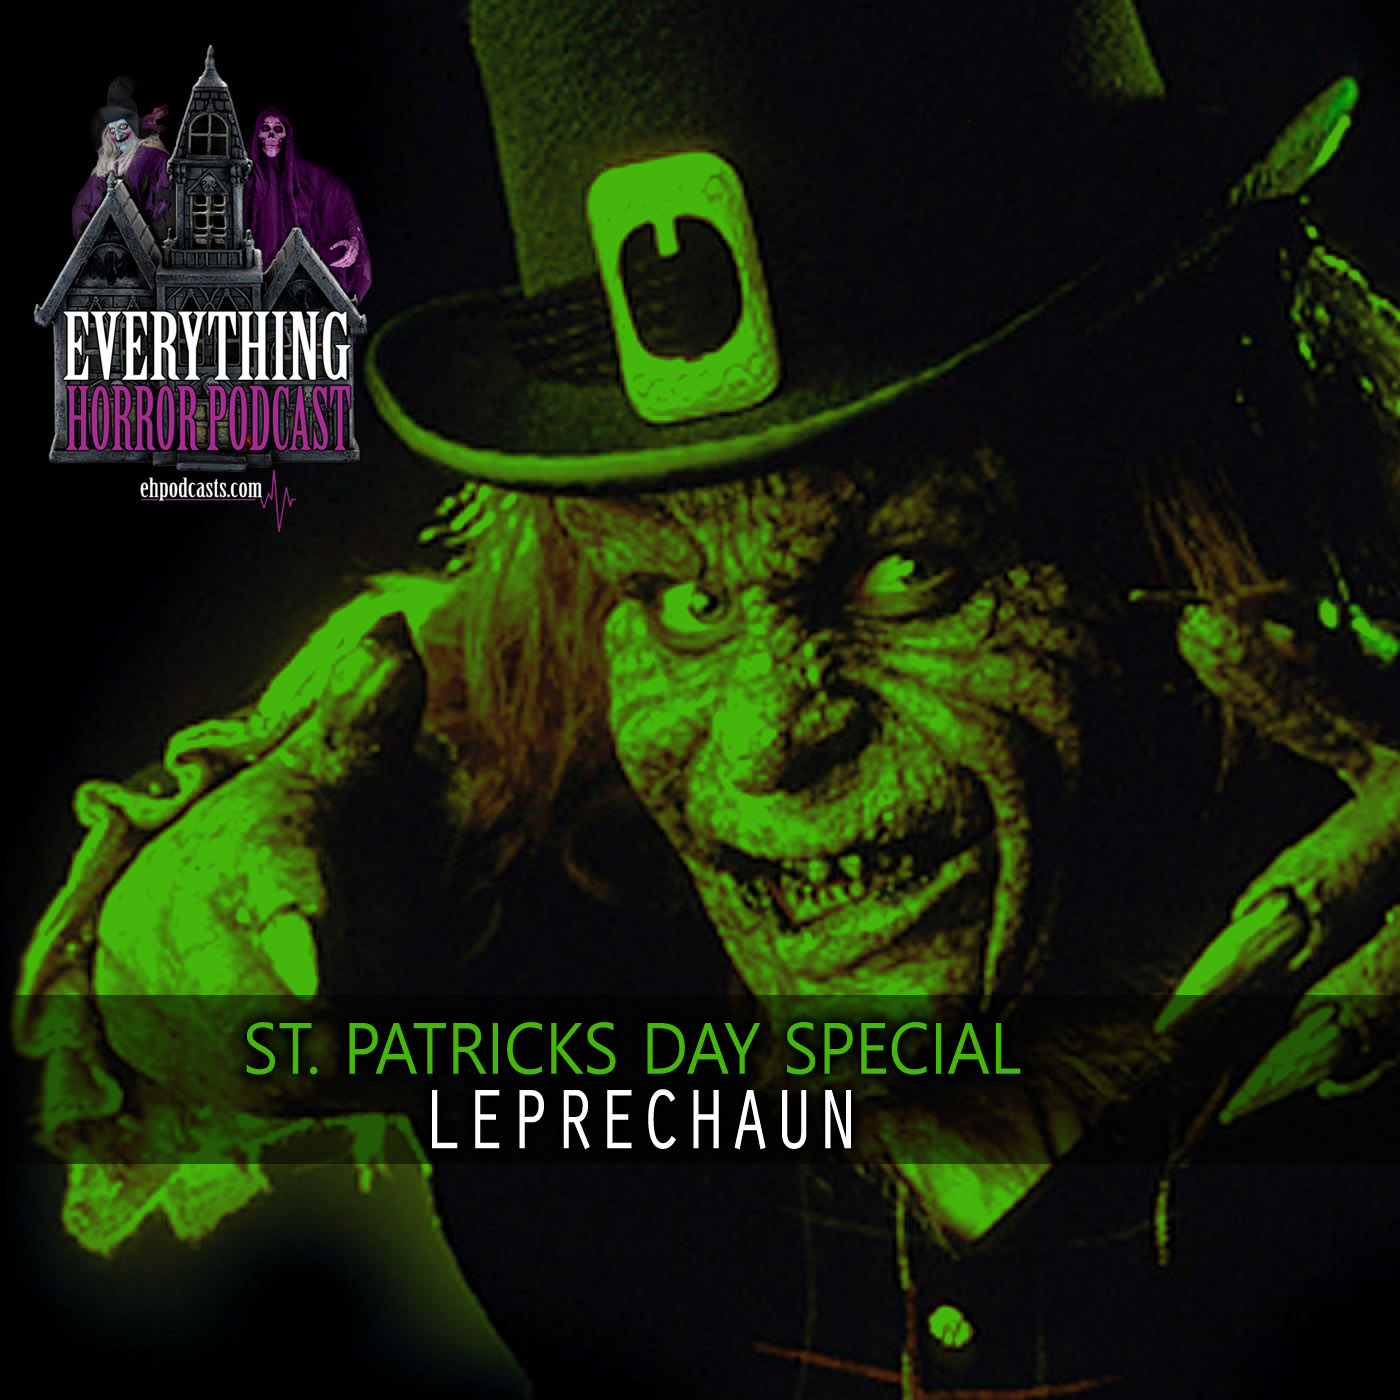 St. Patrick's Day Special: Leprechaun